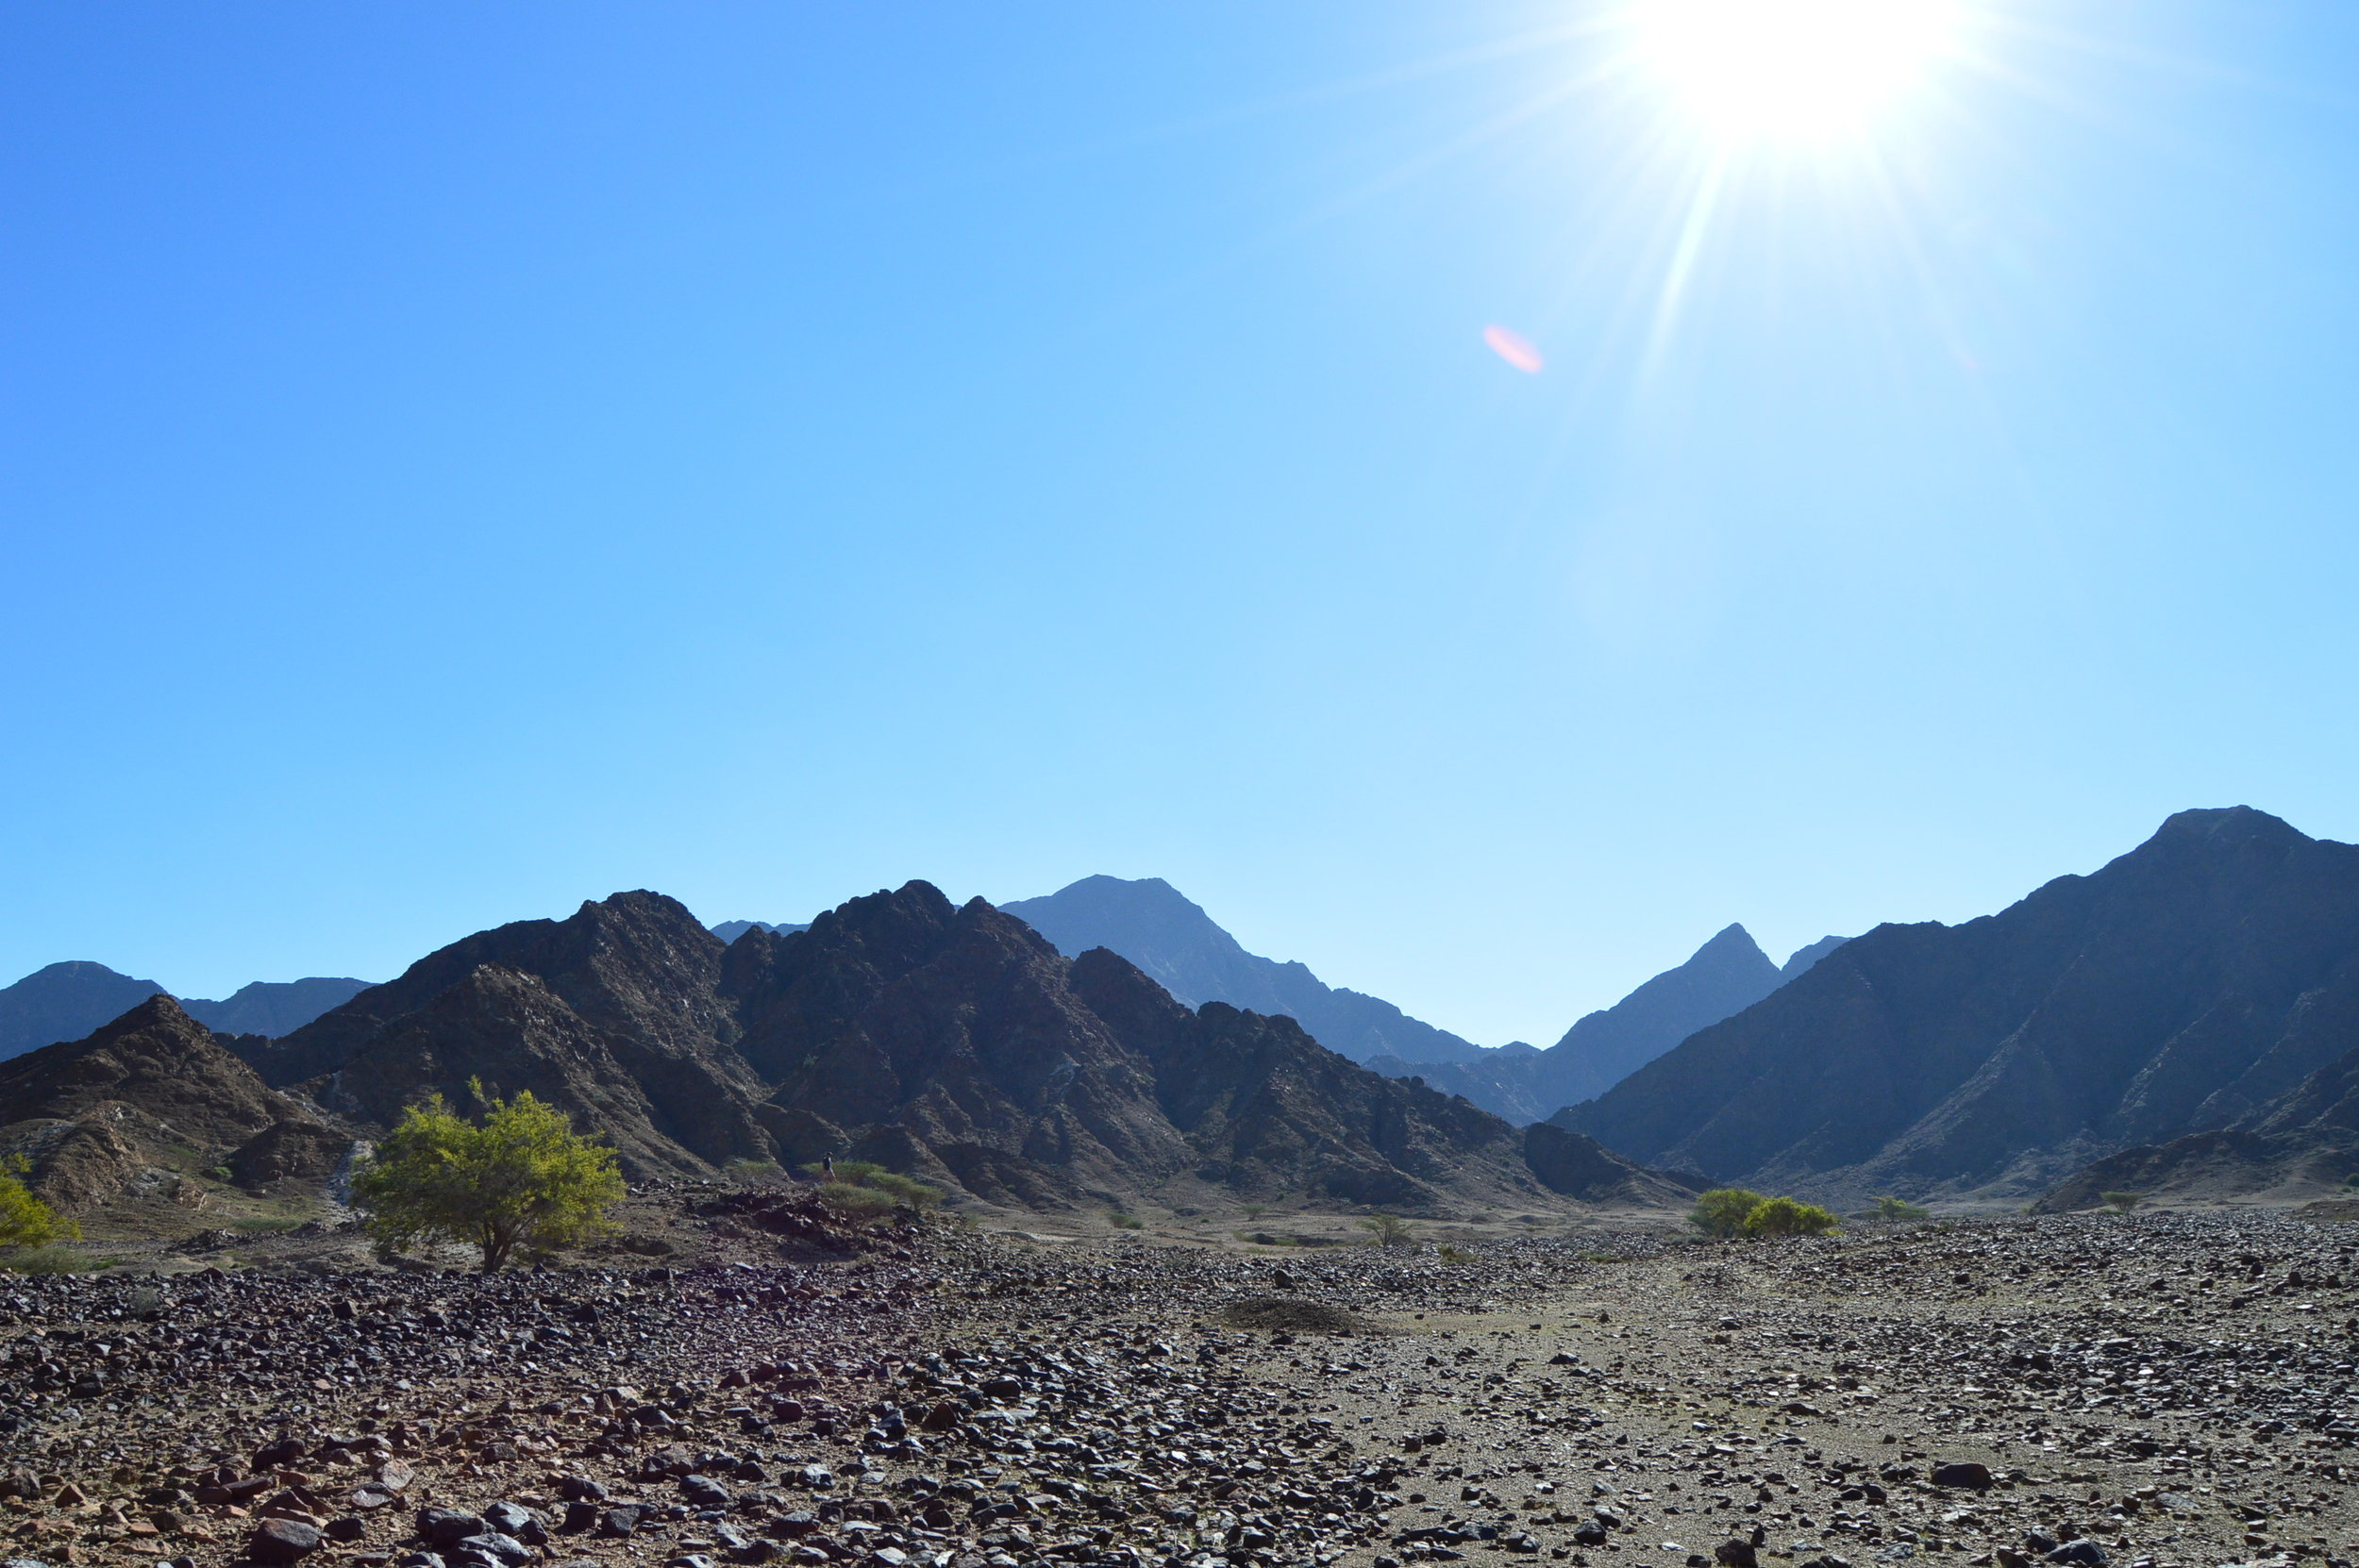 At least not until - we ventured out into Day 3 in Fujairah.